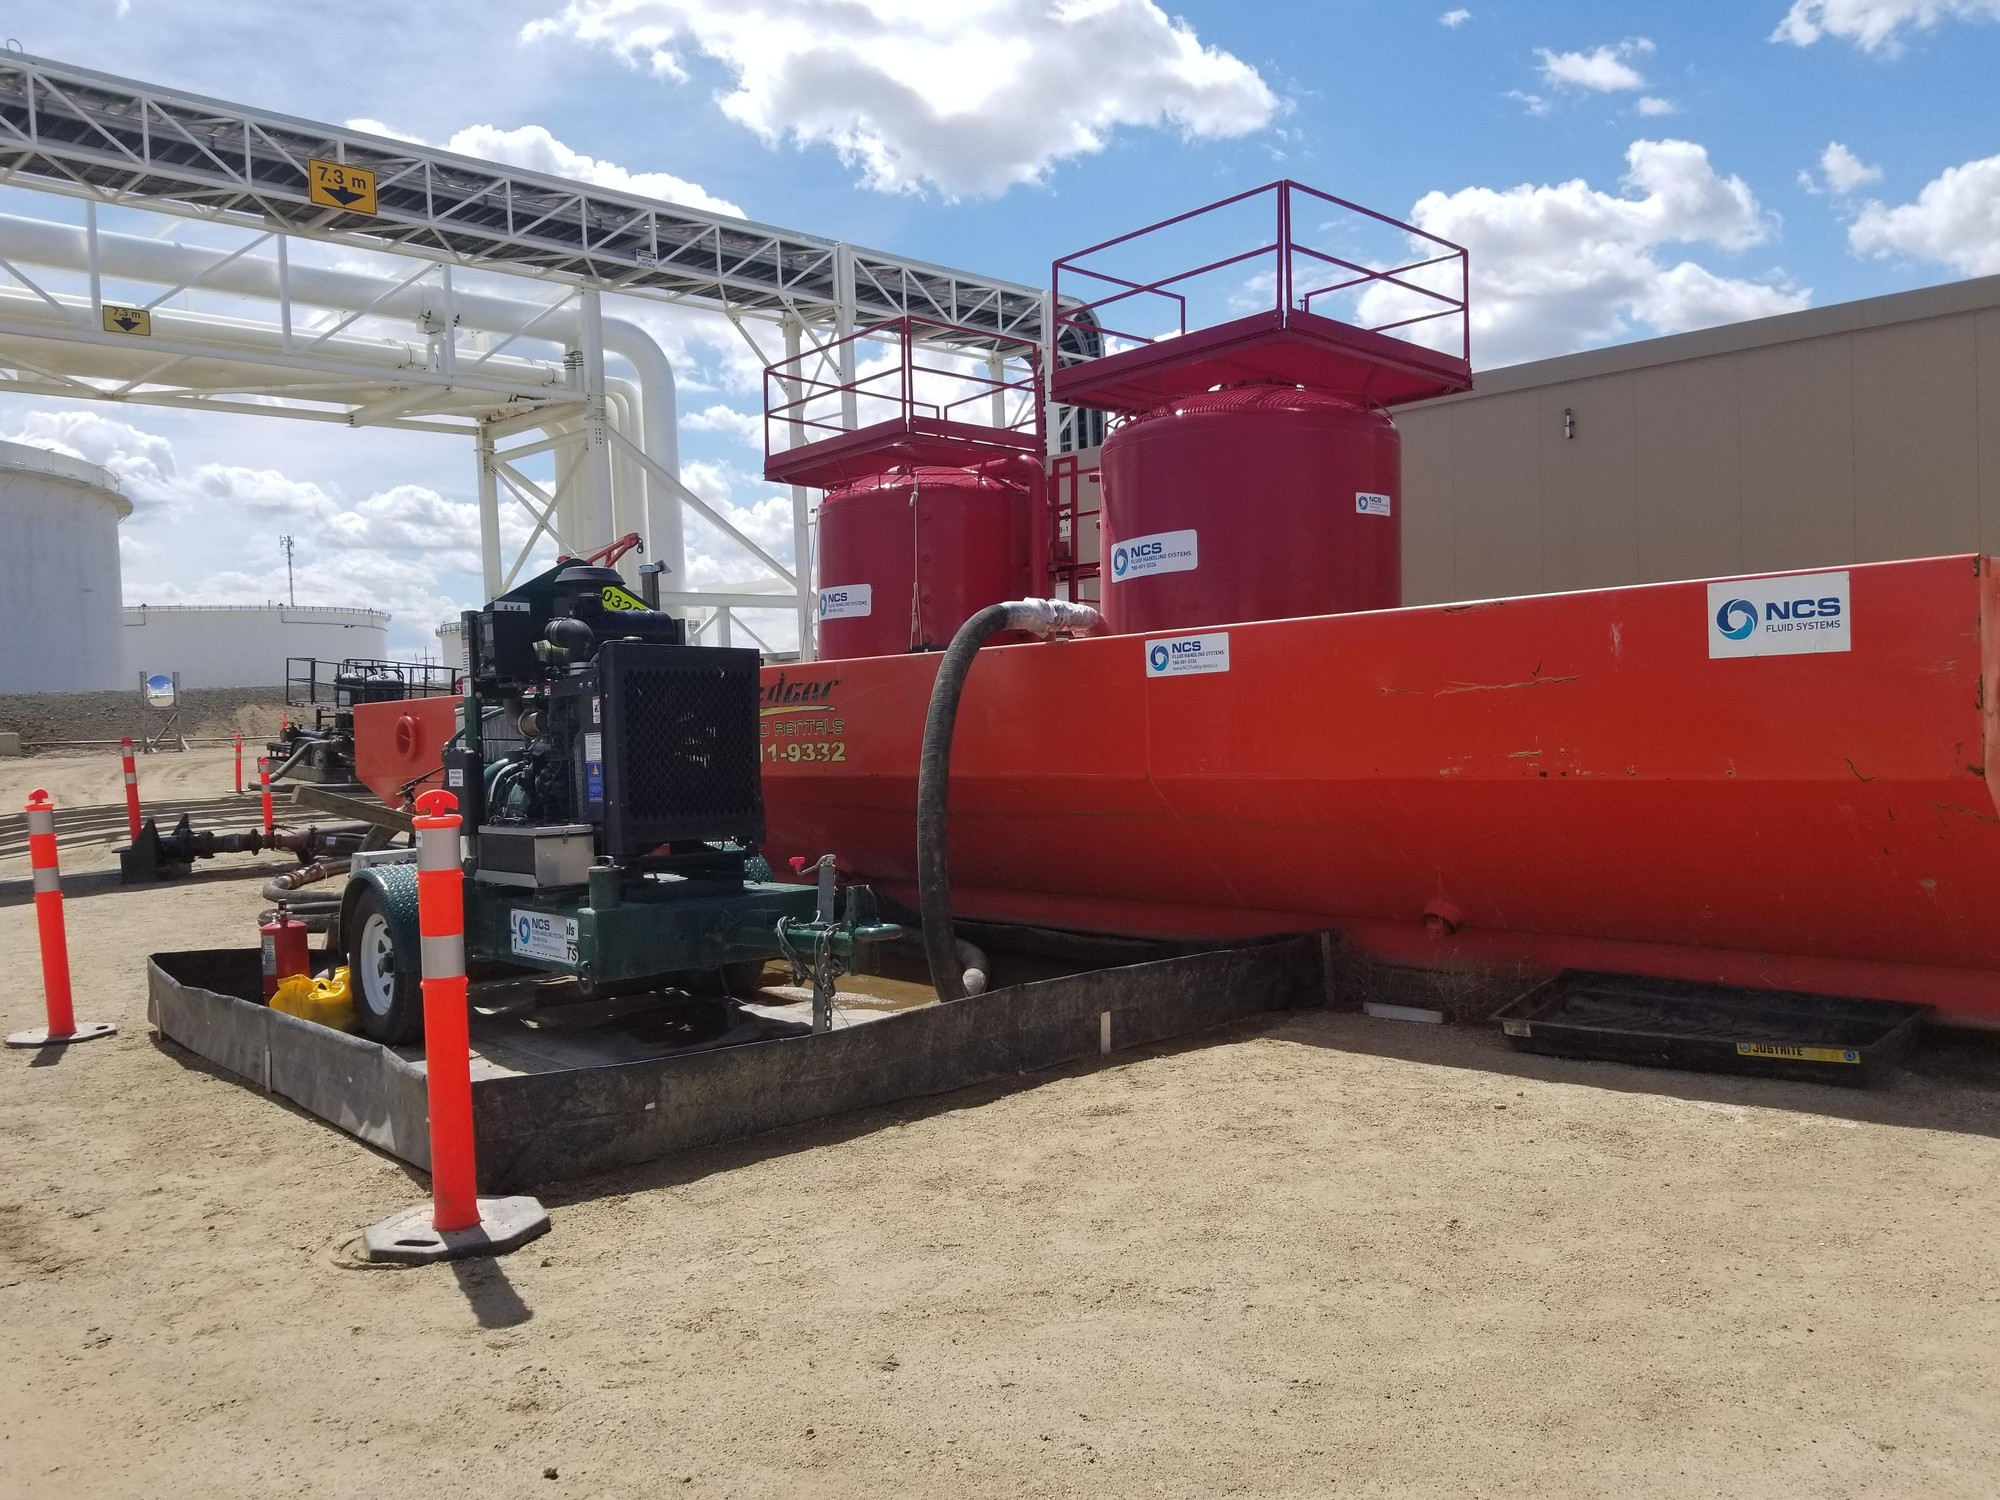 Industrial Filtration Equipment : Ncs fluid handling systems news